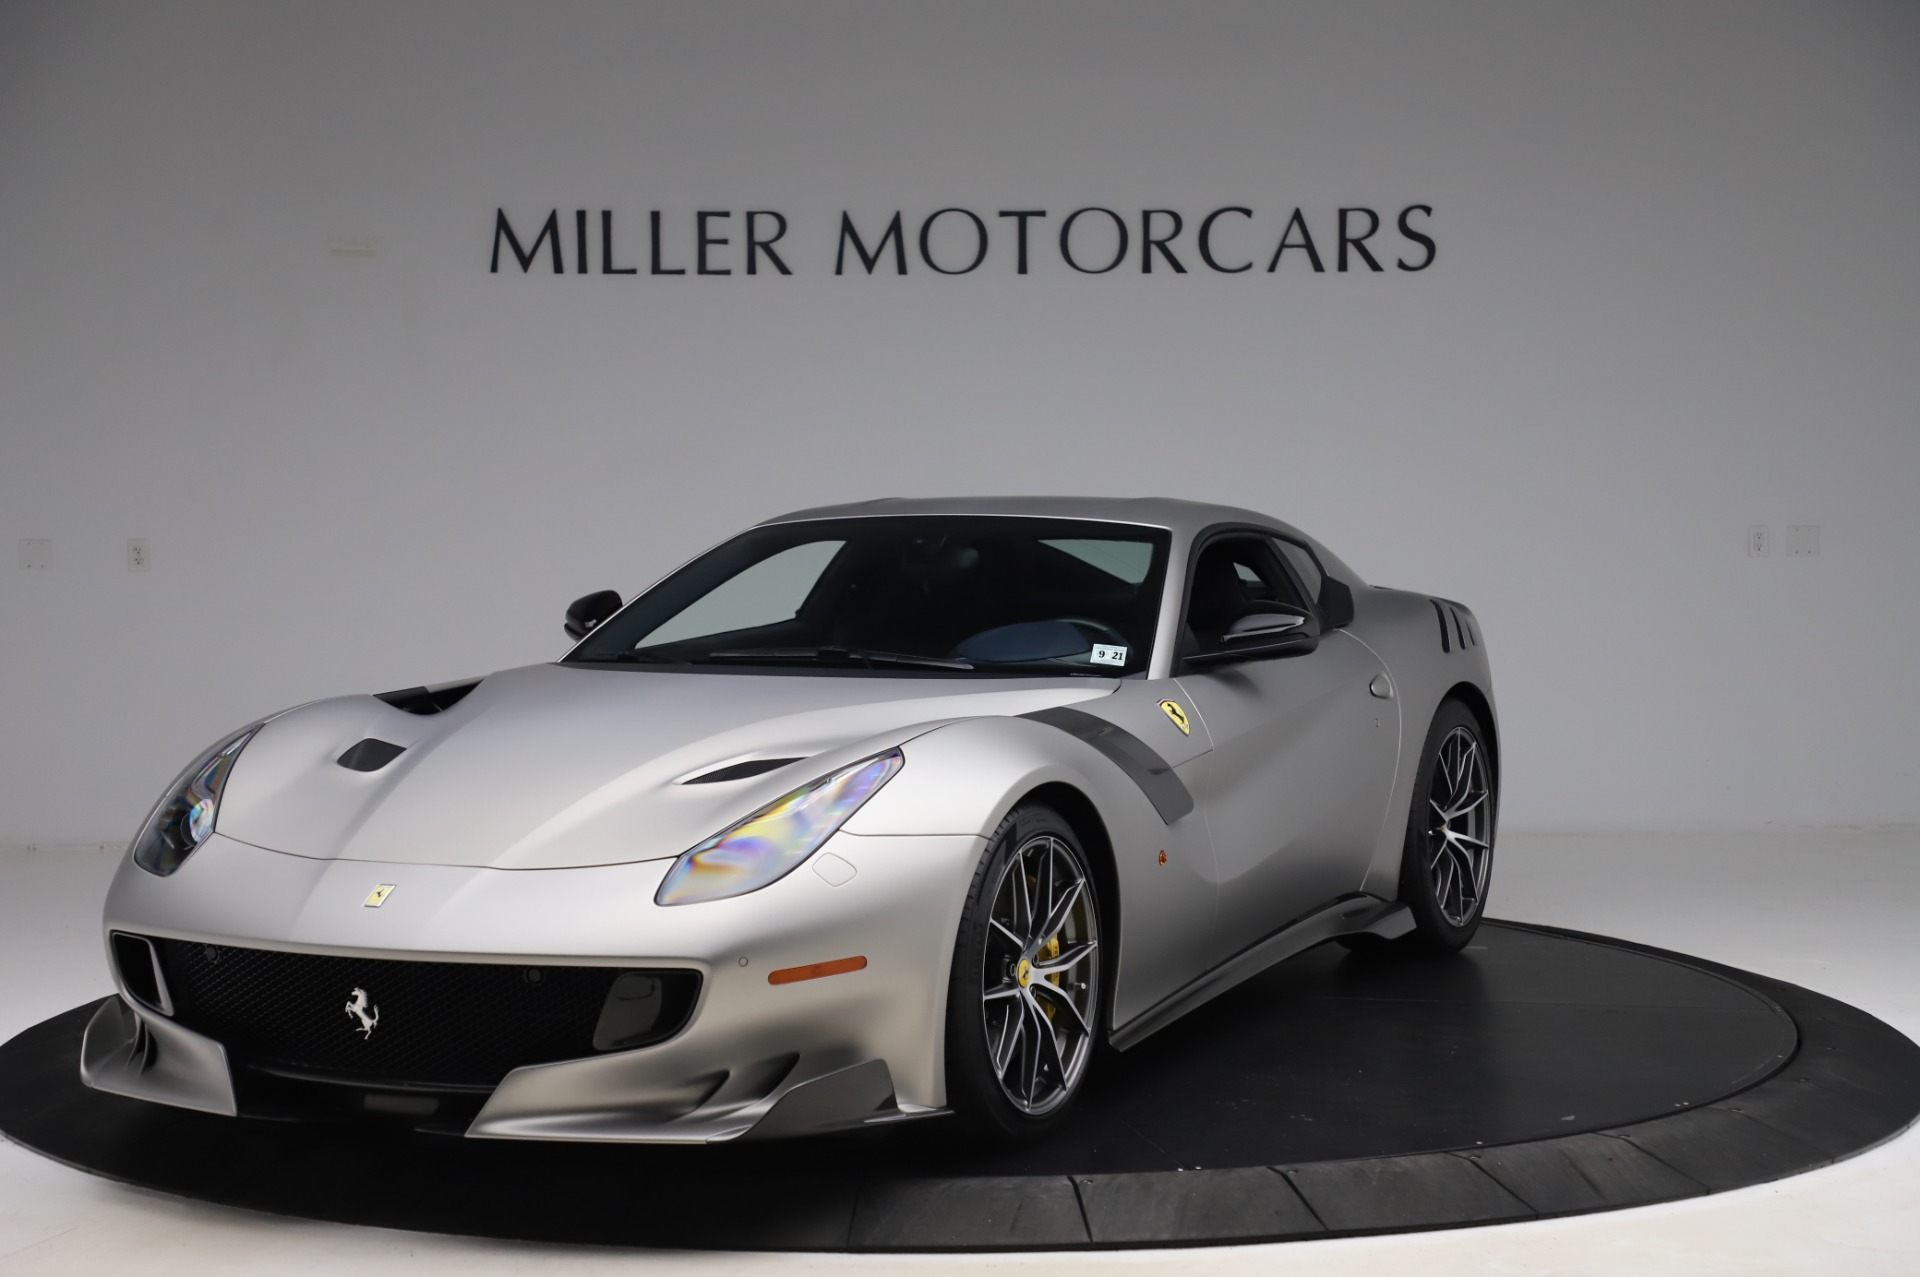 Used 2016 Ferrari F12tdf for sale $925,900 at Rolls-Royce Motor Cars Greenwich in Greenwich CT 06830 1